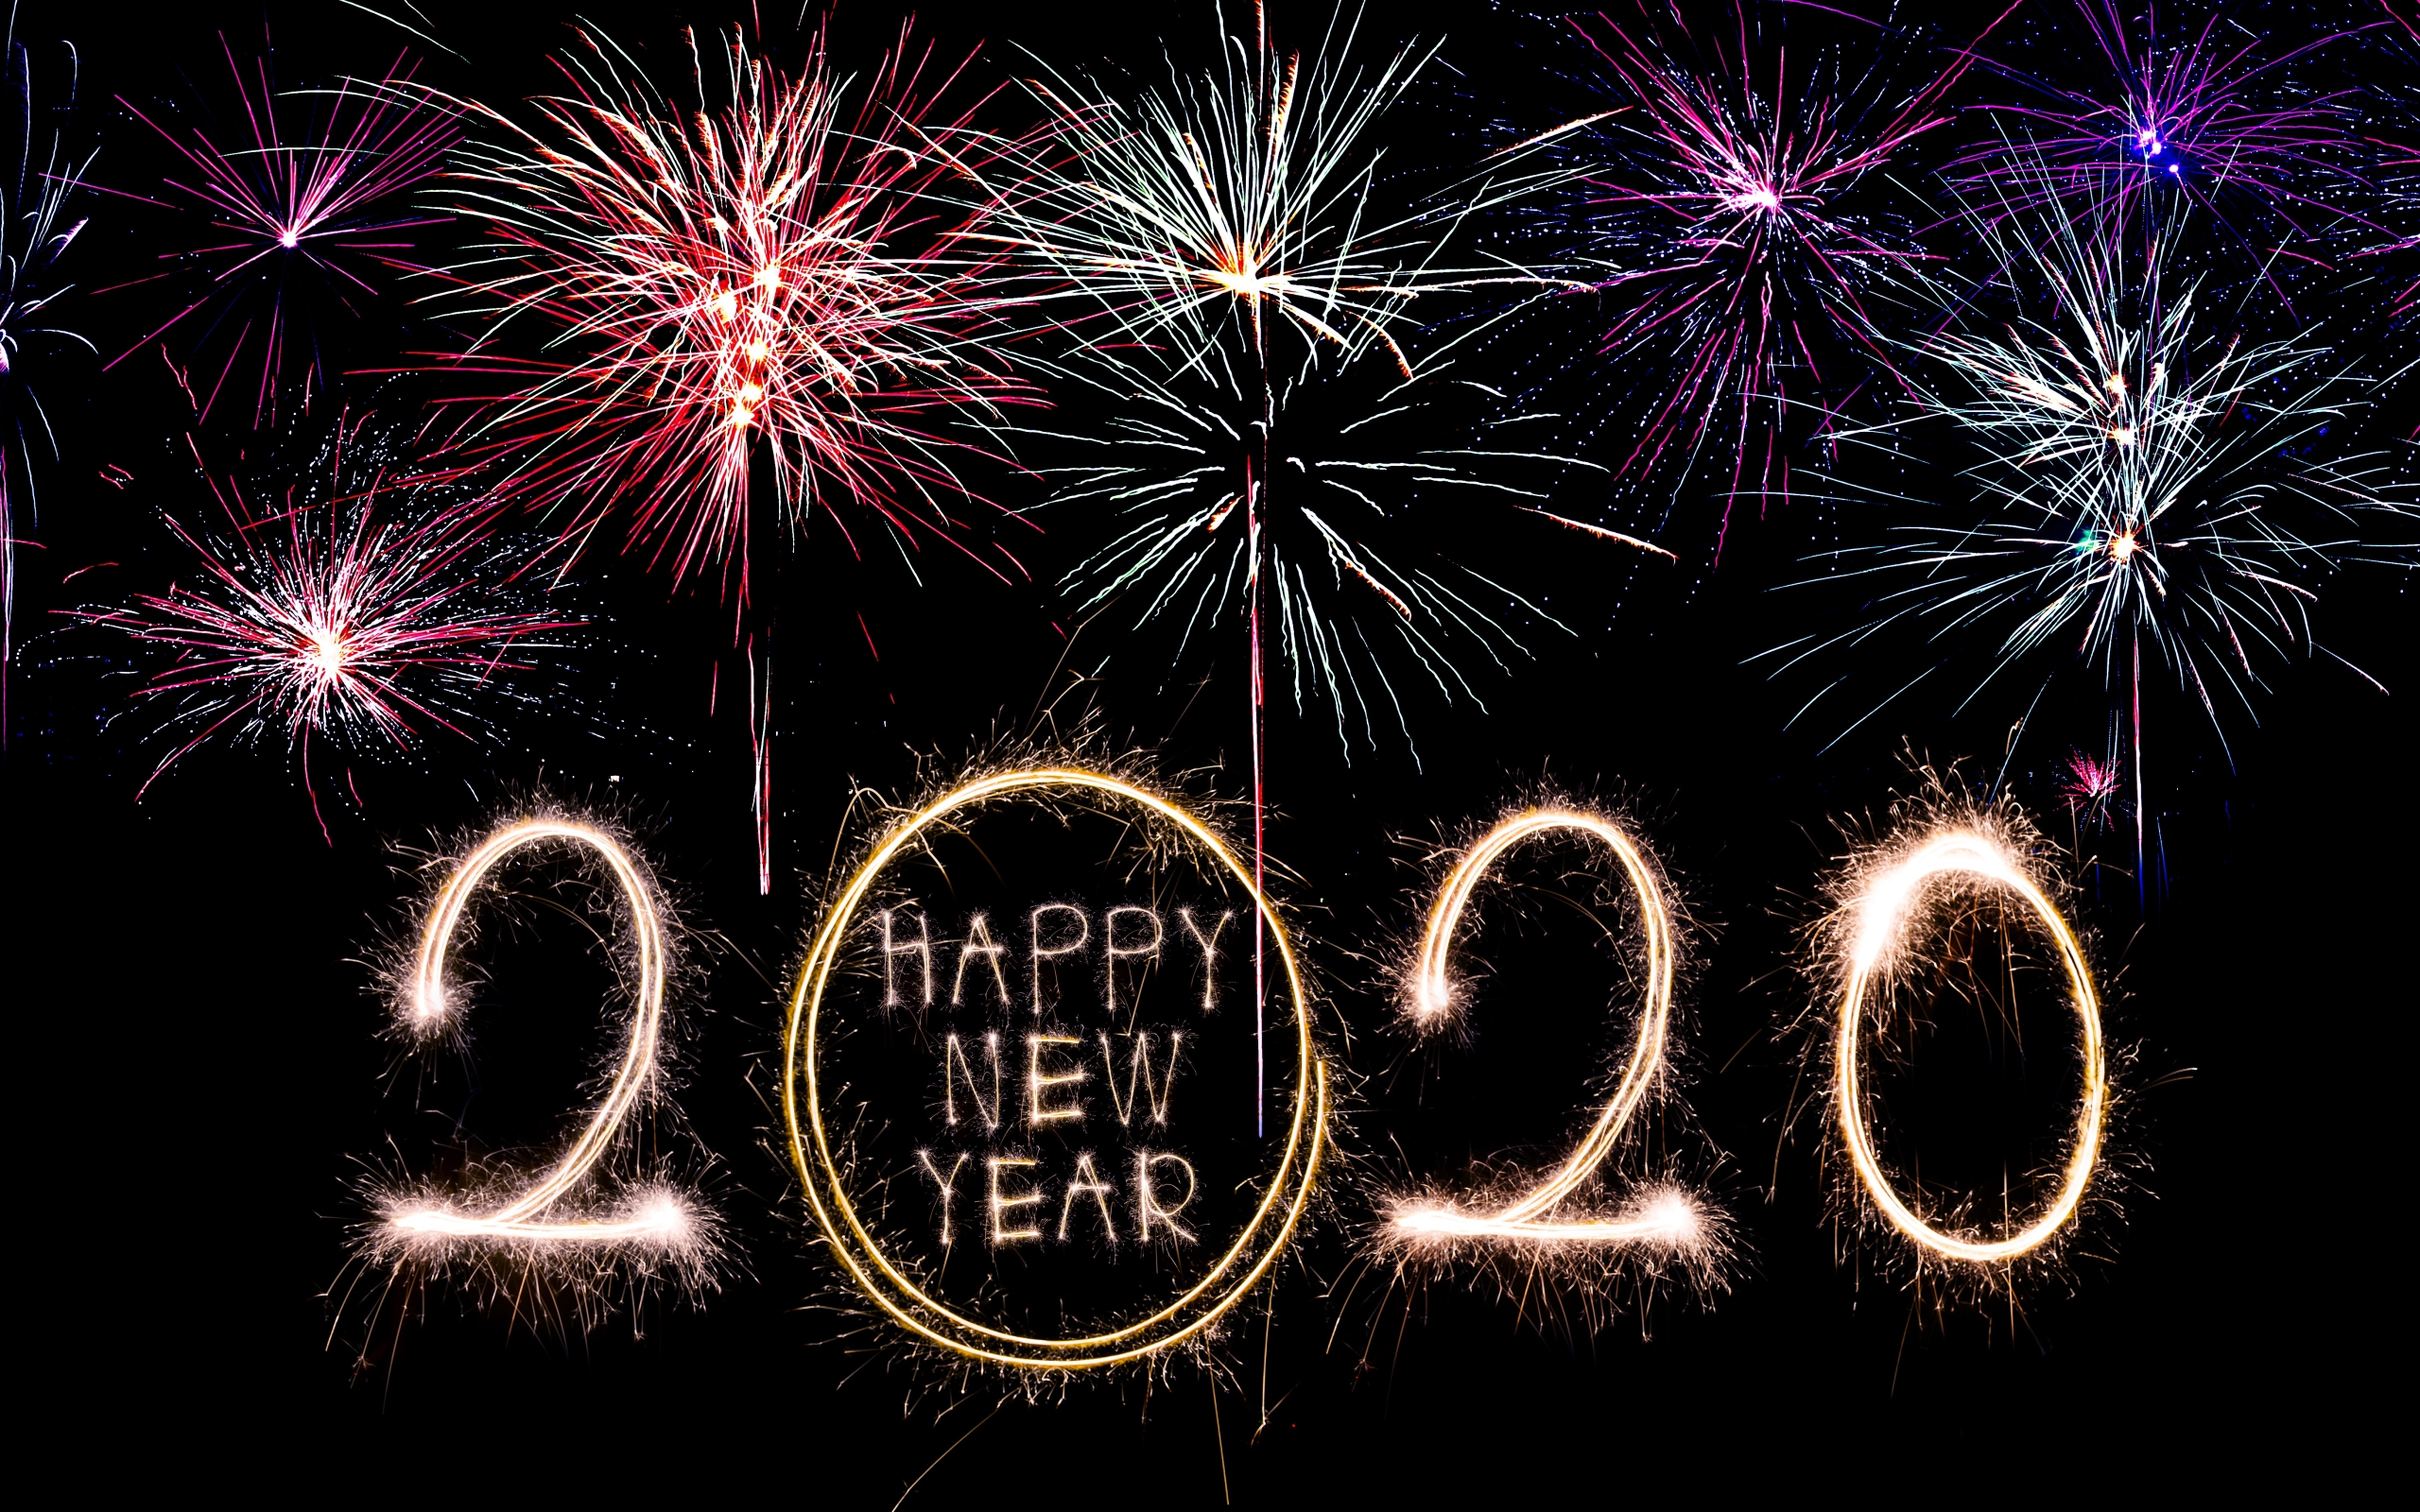 Wallpaper Of Fireworks Happy New Year New Year 2020 Background